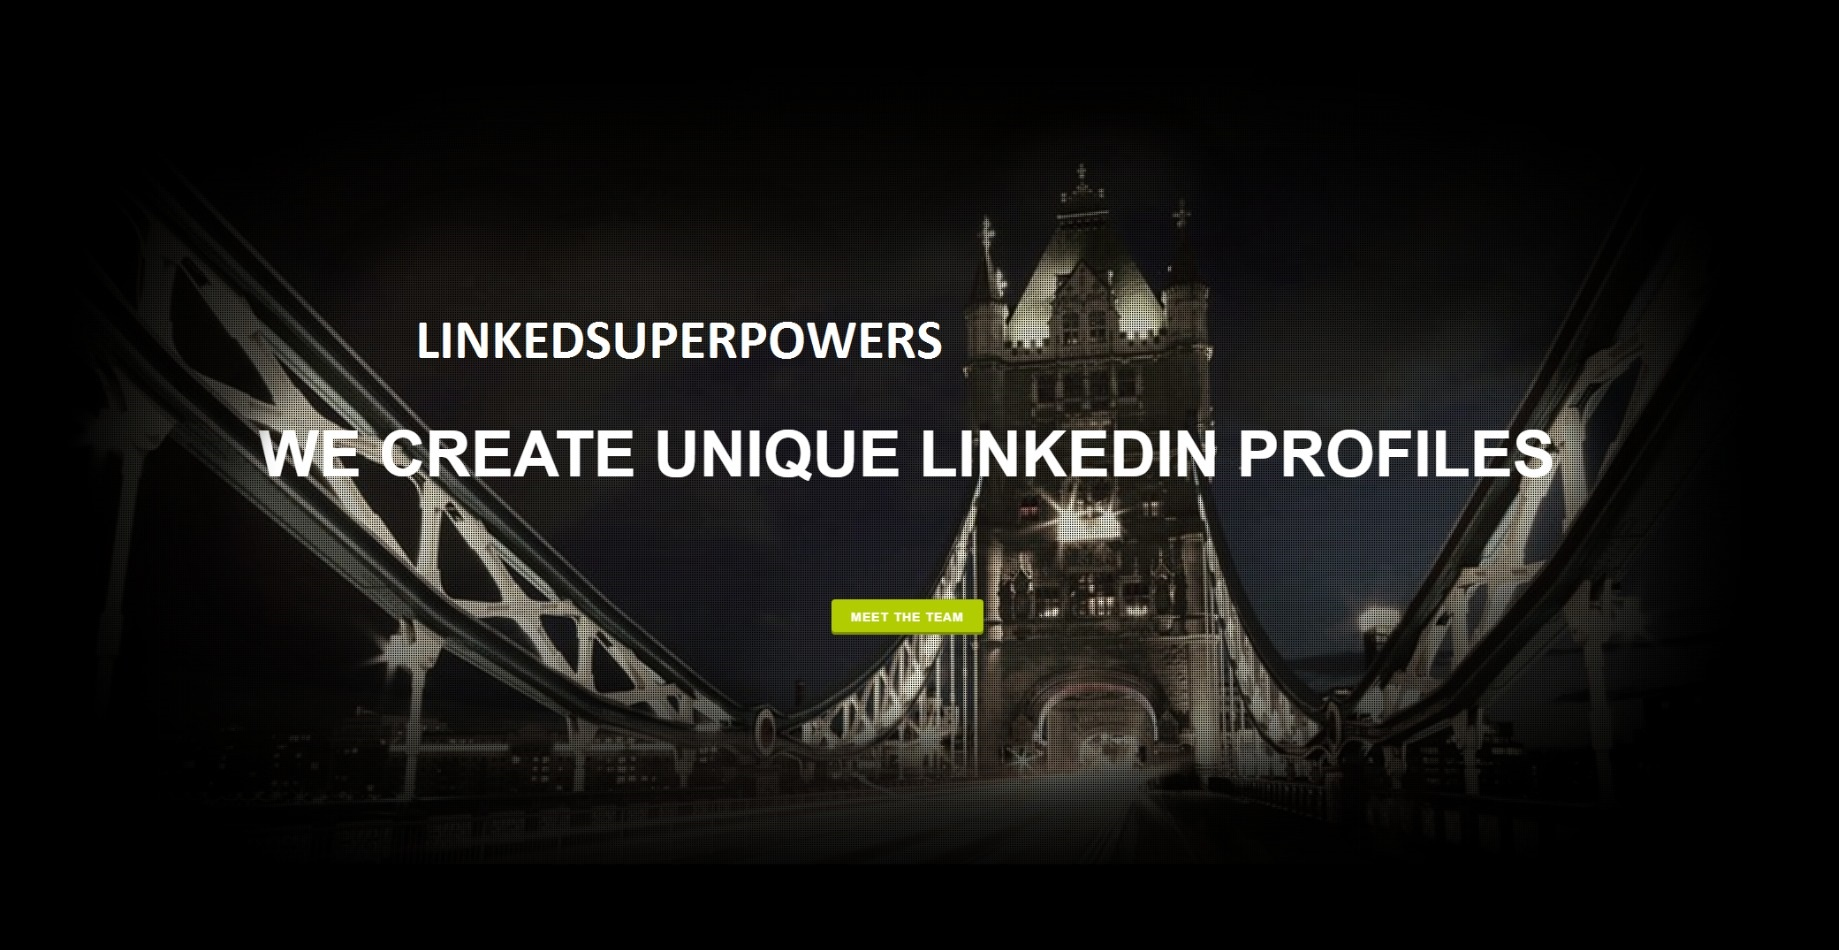 Top Linkedin Expert, Dennis Koutoudis and LinkedSuperPowers presentation at IdeaDeco by Areti Vassou